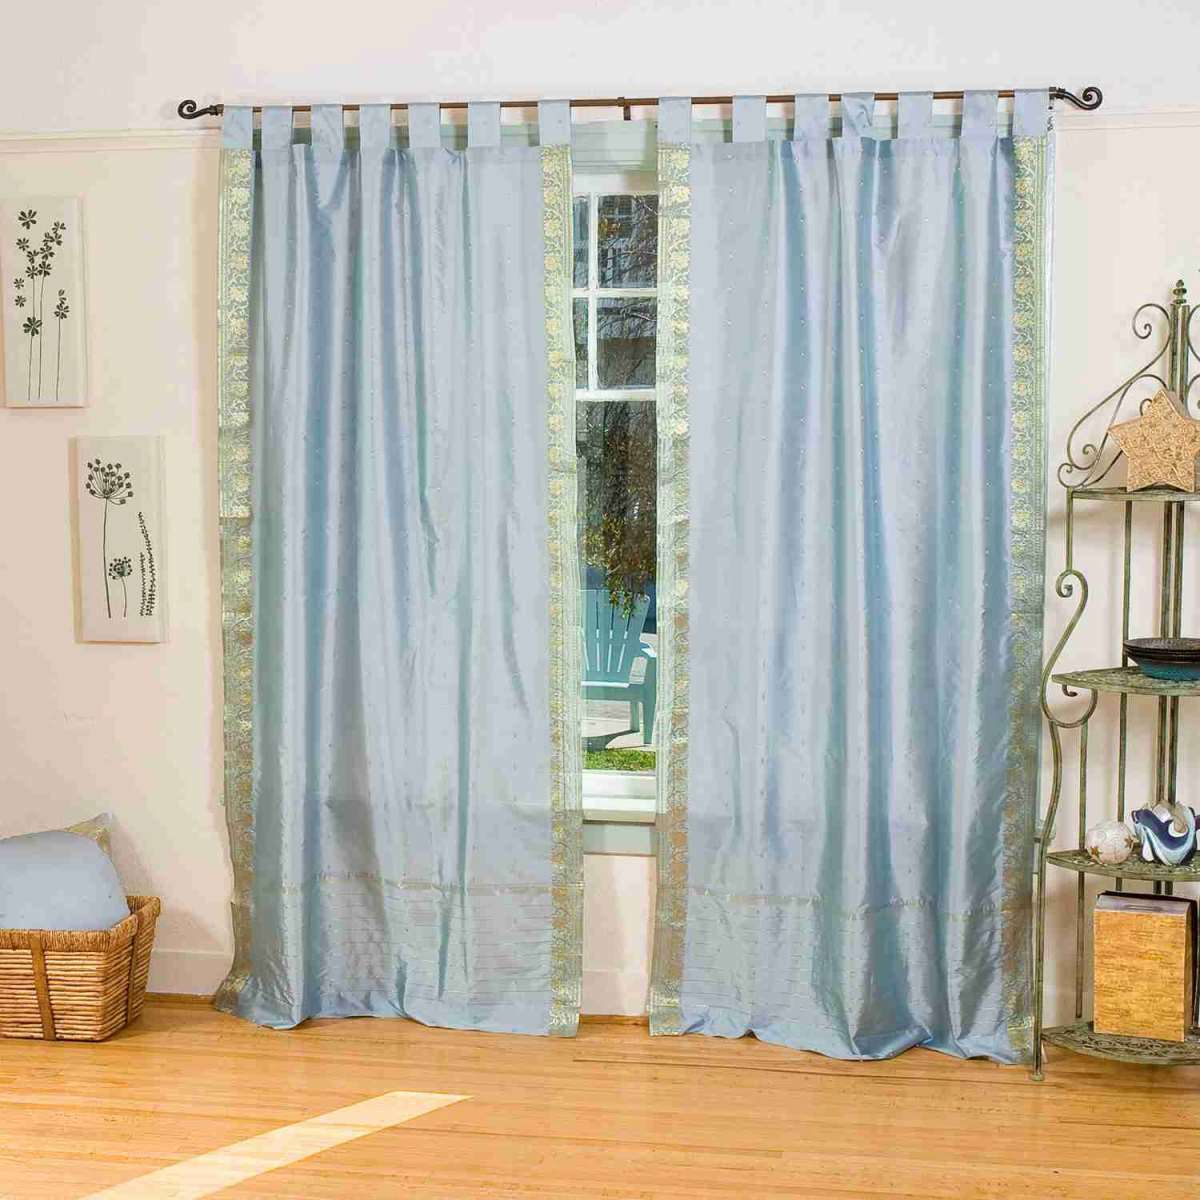 Lined-Gray  Tab Top  Sheer Sari Curtain  Drape  Panel   - 80W x 108L - Piece